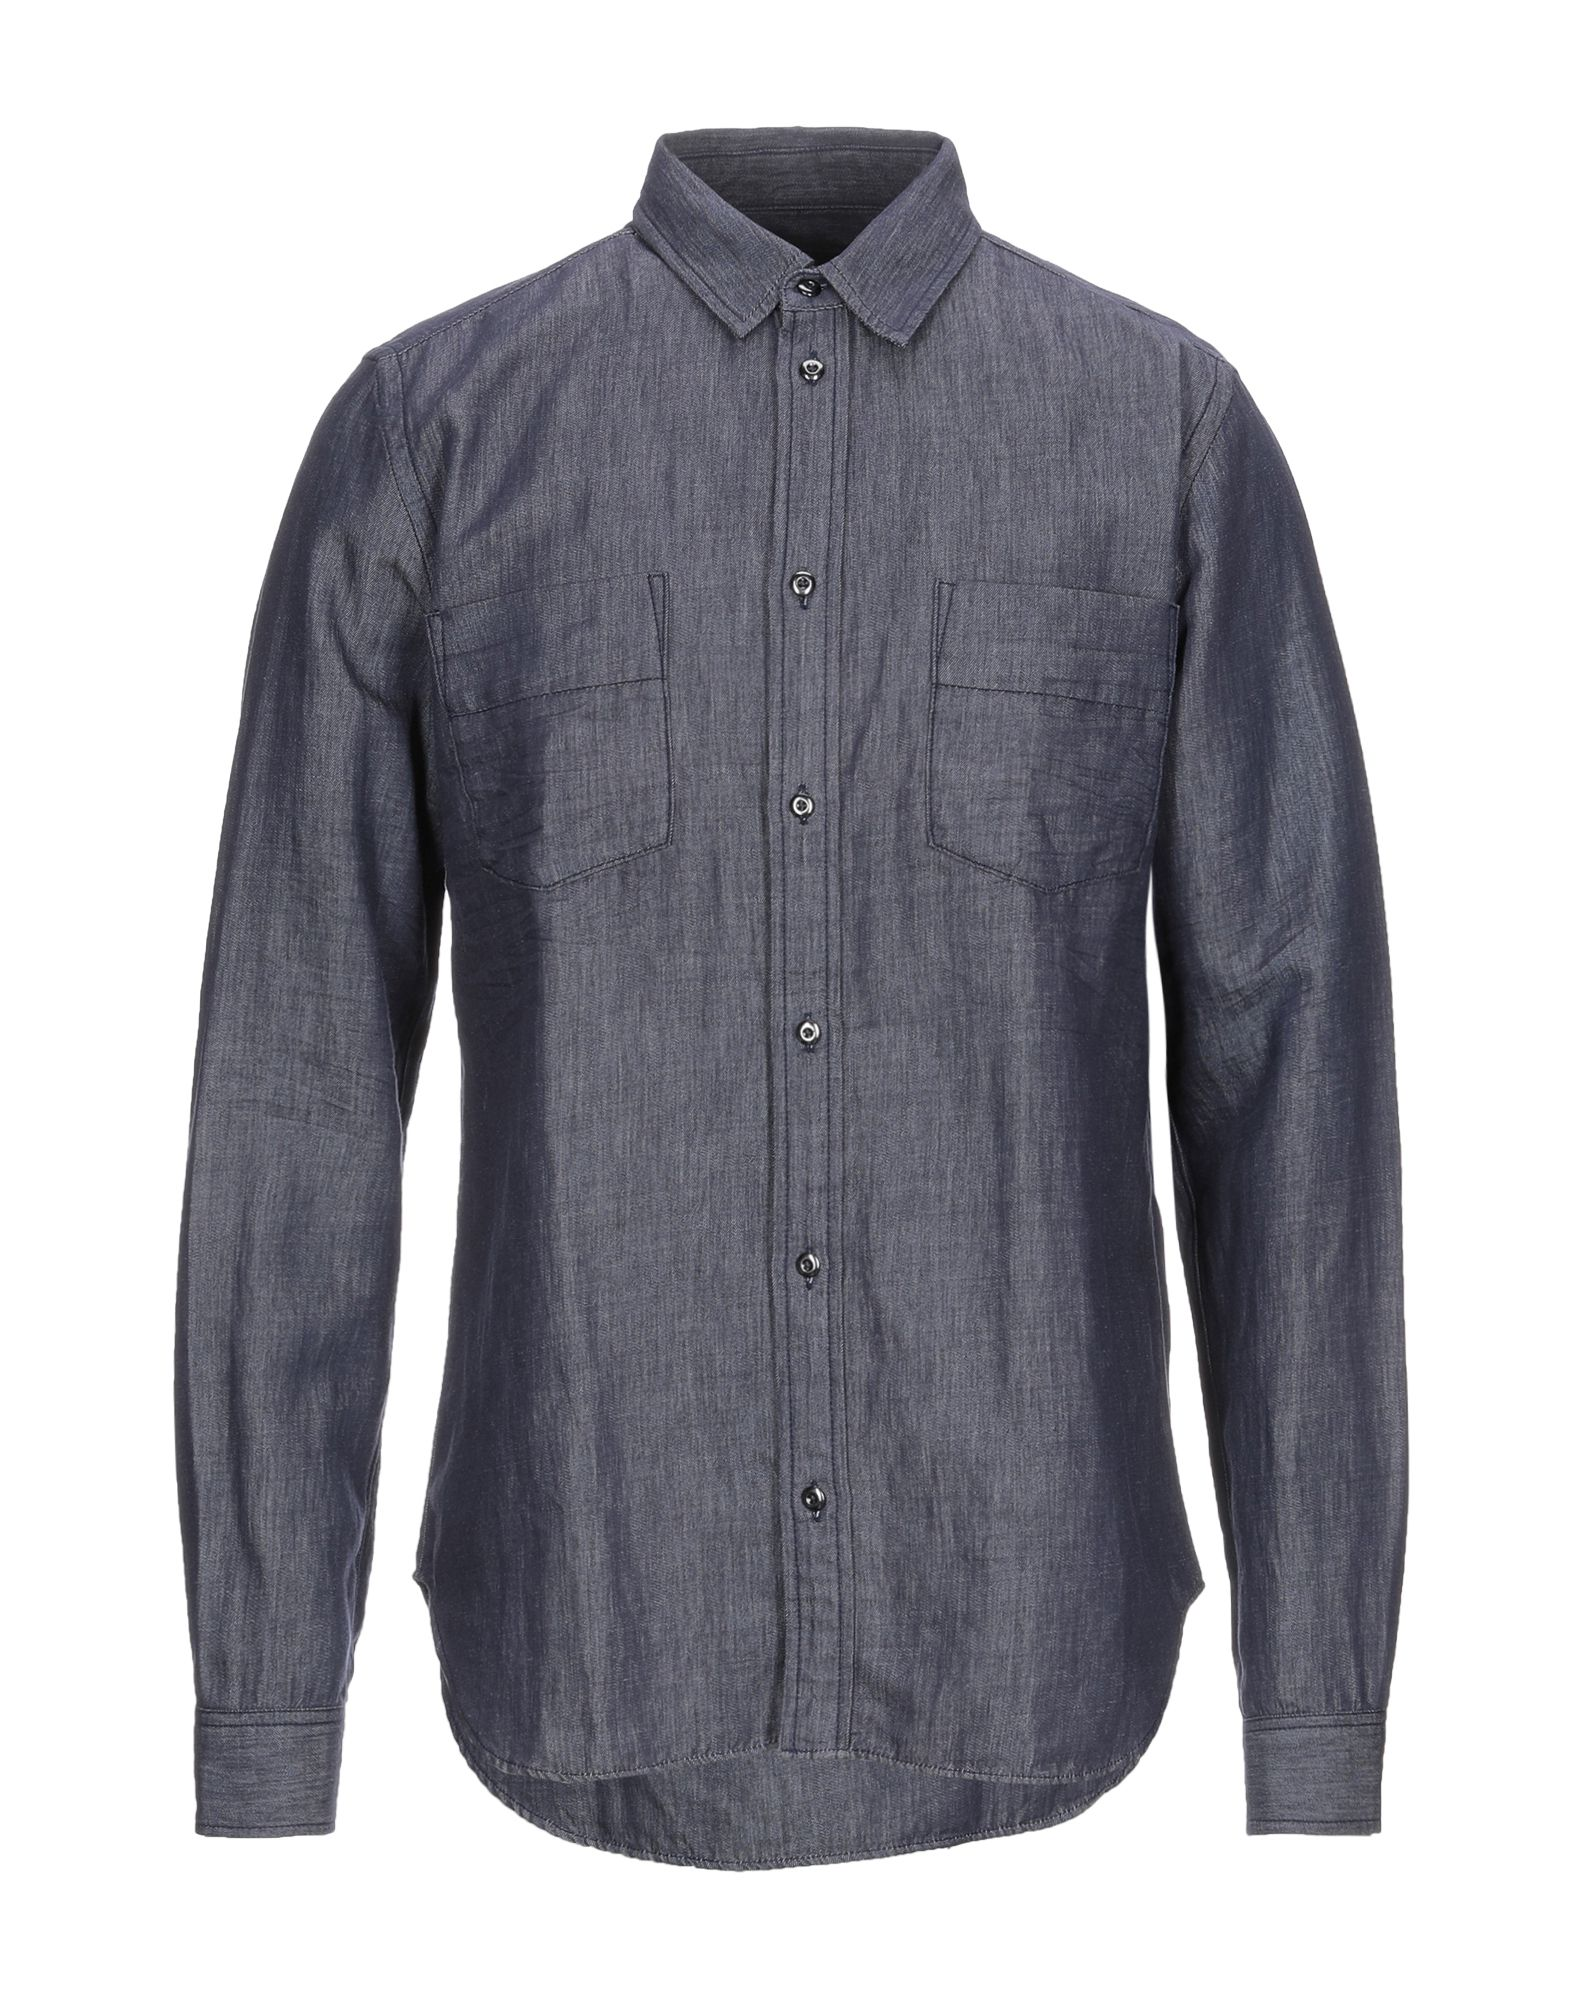 MARC BY MARC JACOBS Denim shirts - Item 42814081